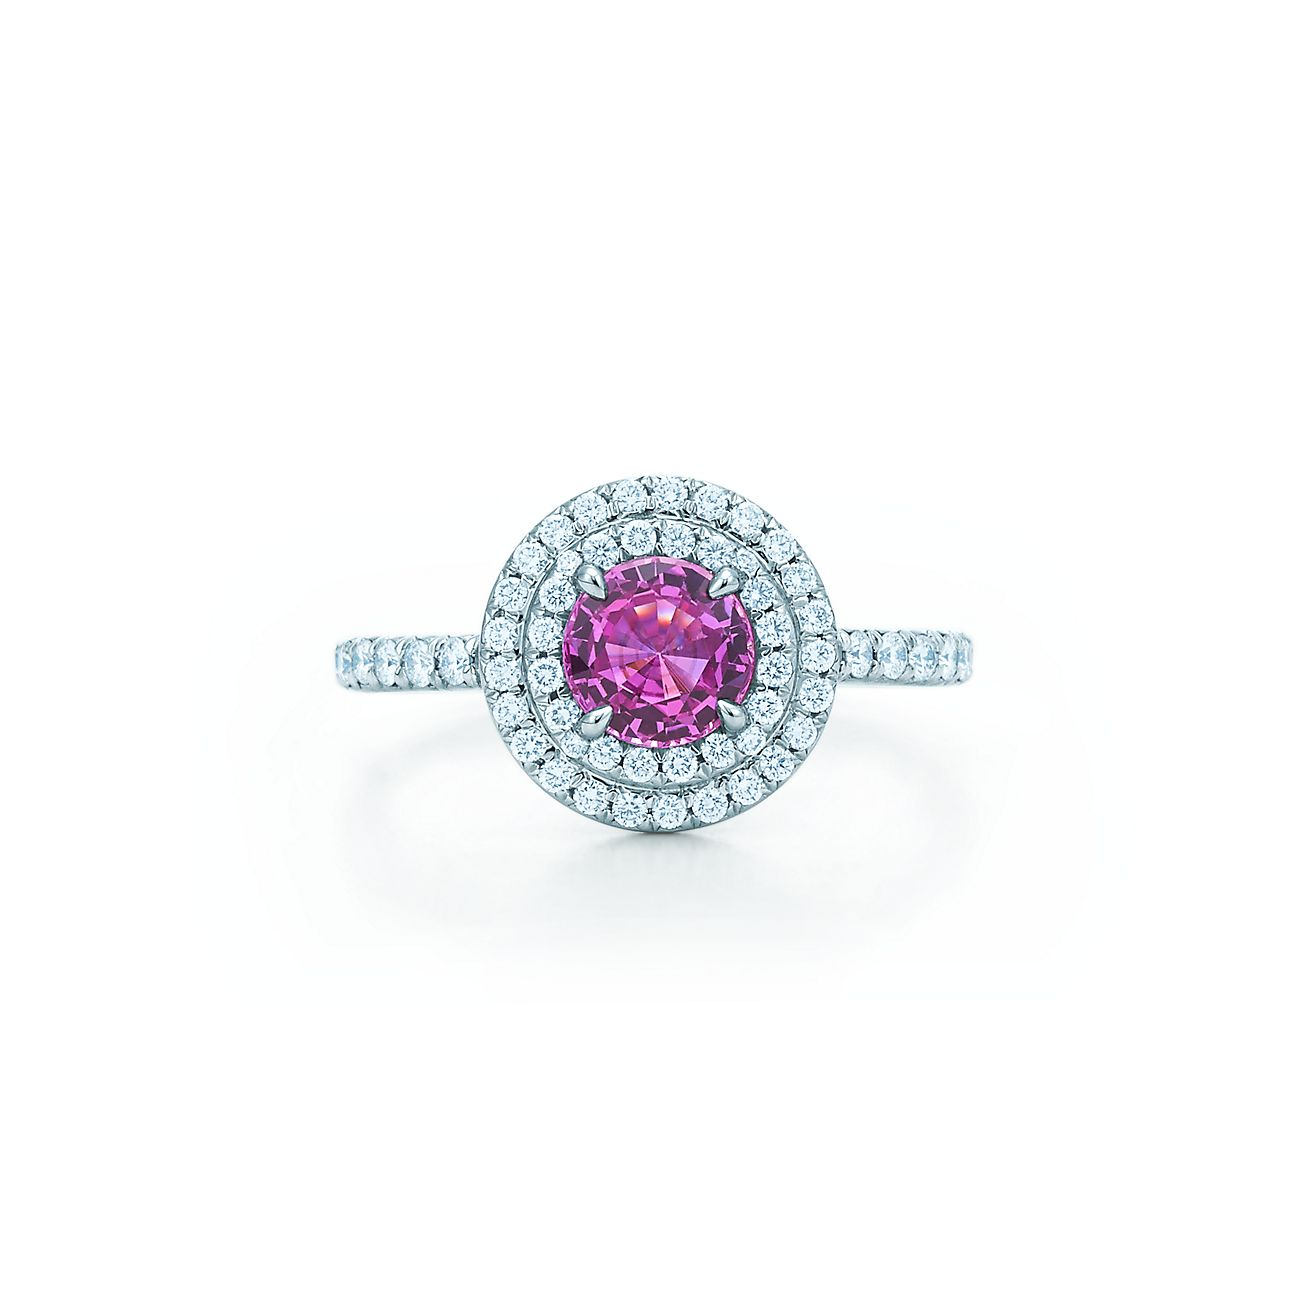 ring jeweler jewelry diamond pink rings bridge ben sapphire